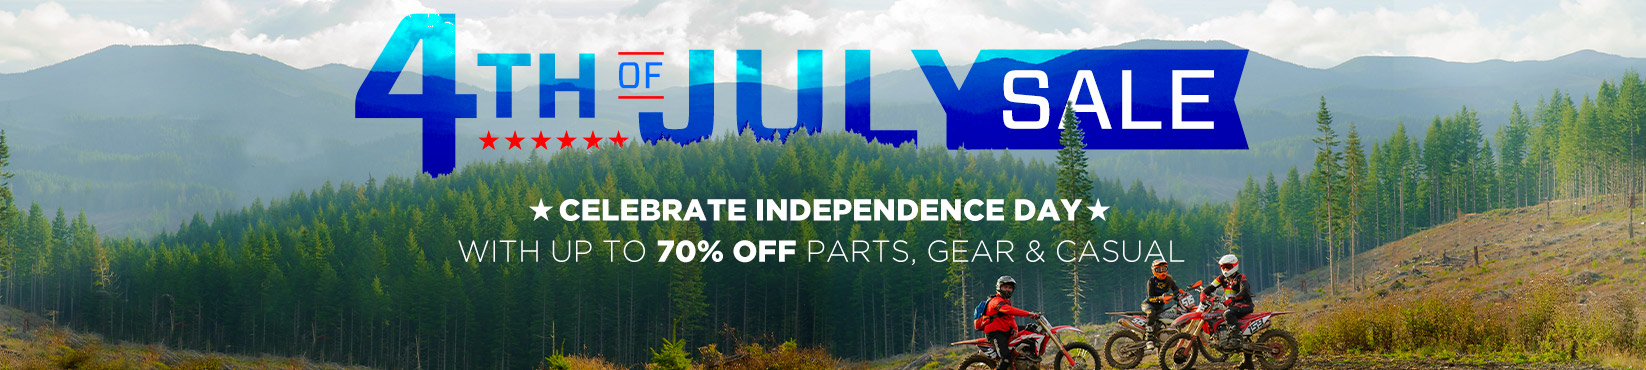 4th of July Sale - Save Up To 70%